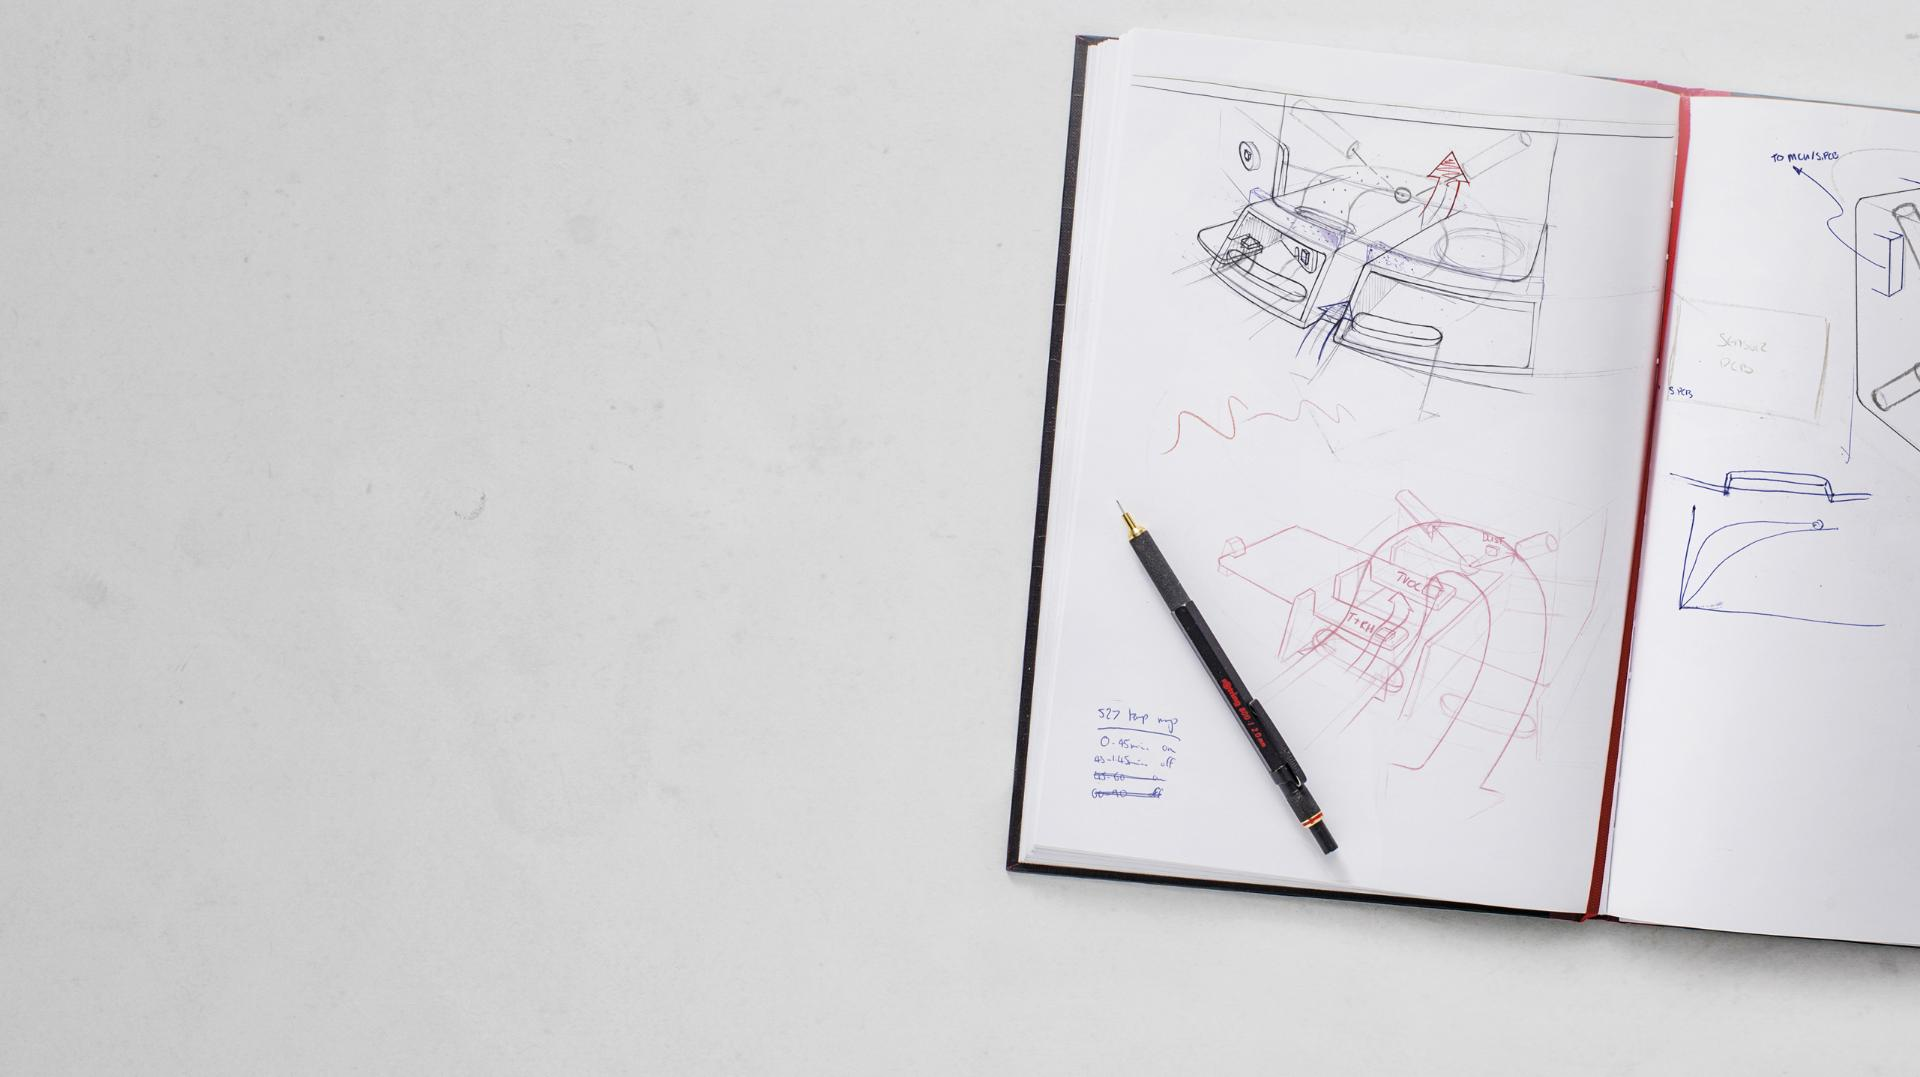 Dyson engineer sketch book